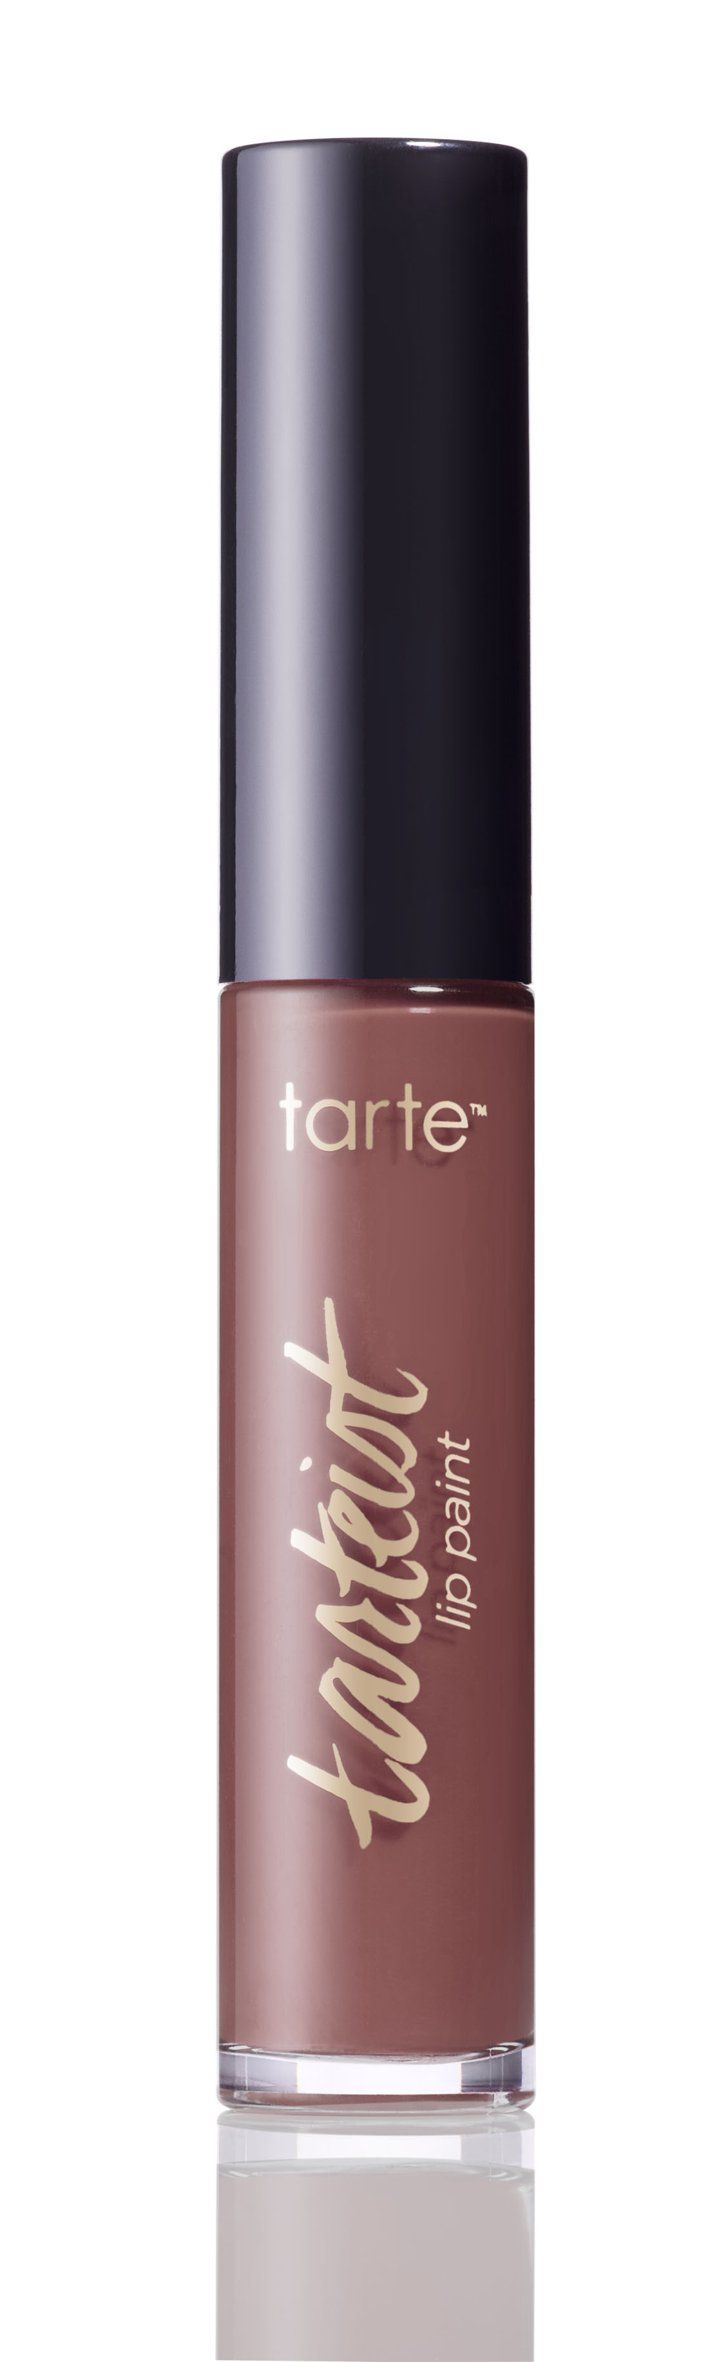 Pin for Later: Natural Beauty Alternatives to the Kylie Lip Kit Matte Lipstick Tarte Tarteist Creamy Matte Lip Paint in Mauve